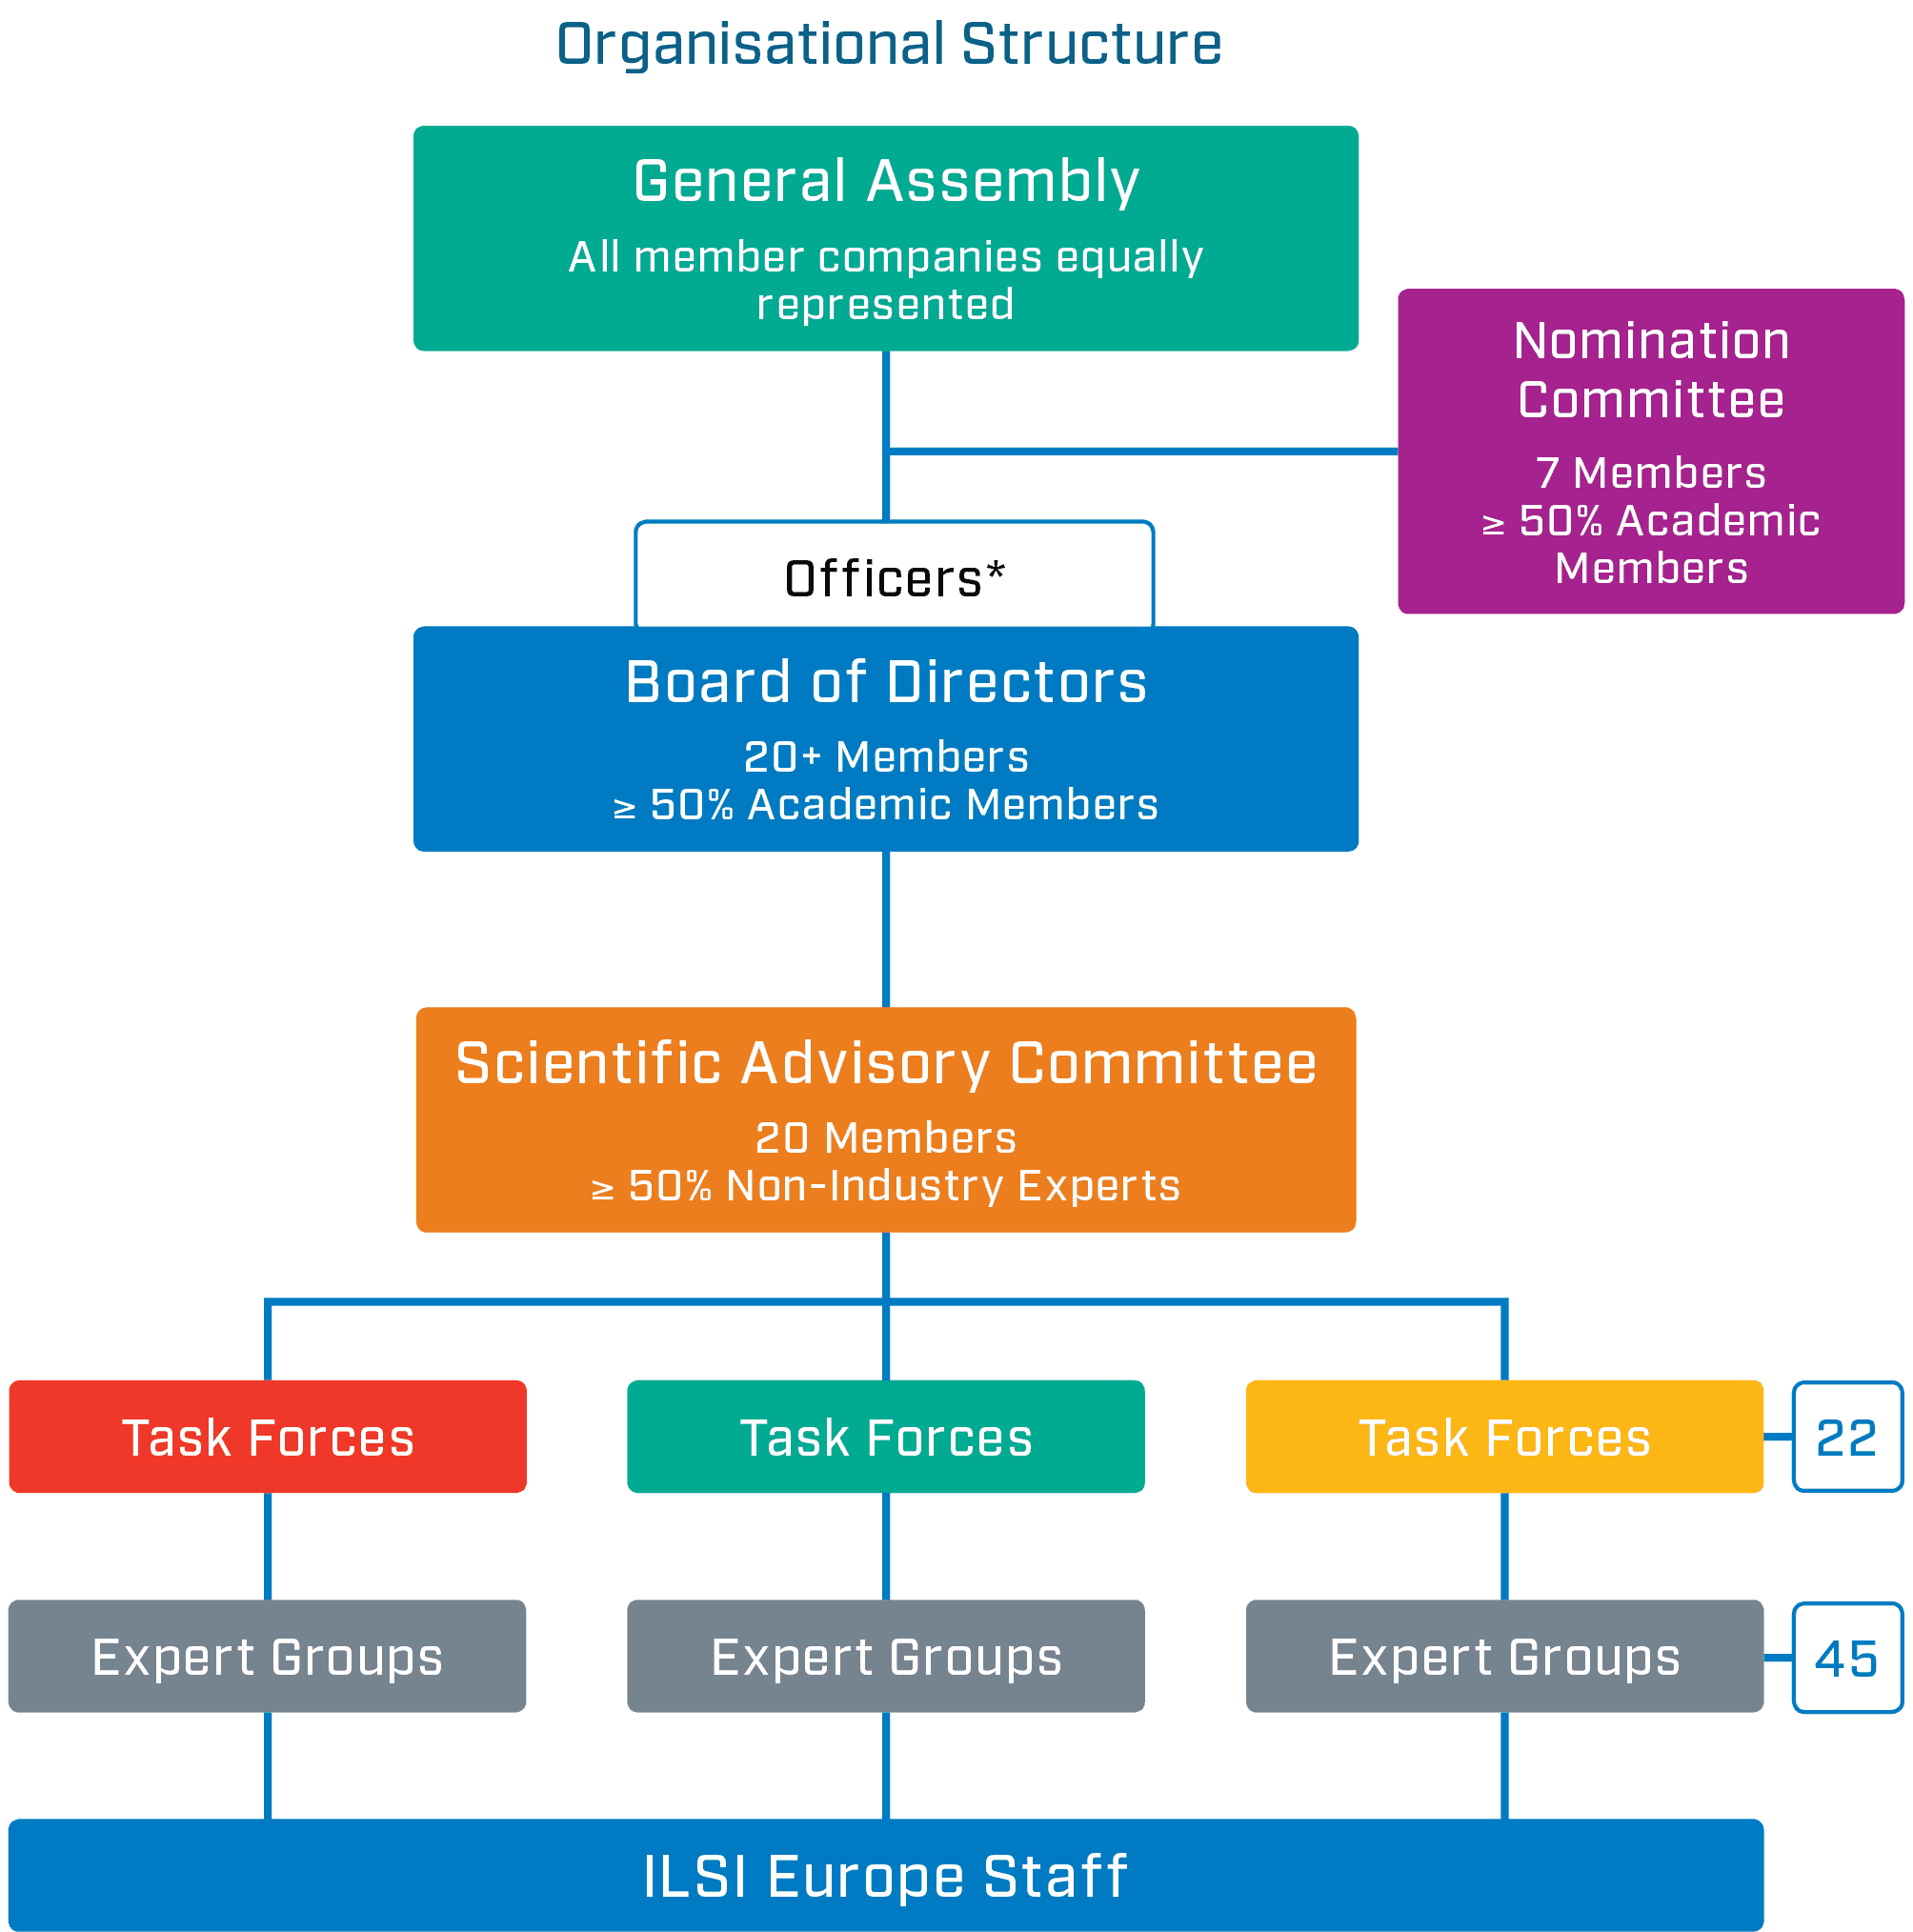 Organisational Structure 2018